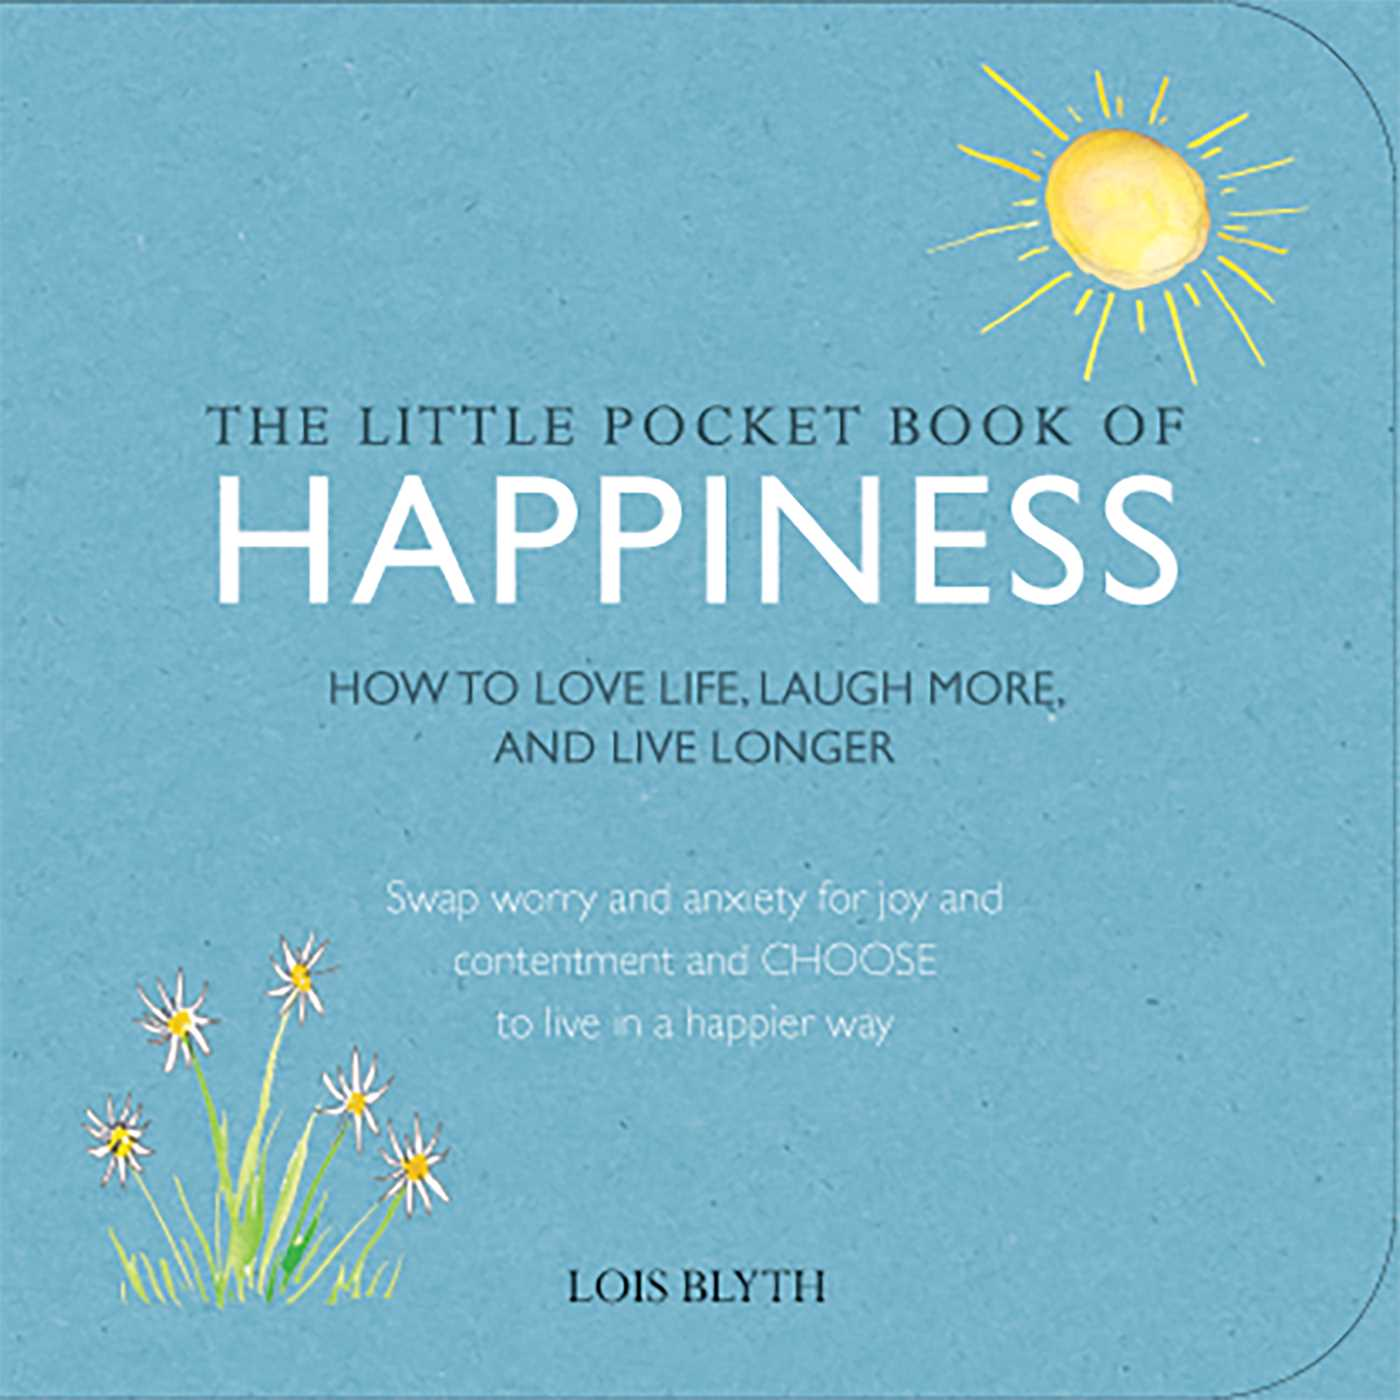 The little pocket book of happiness 9781782492603 hr